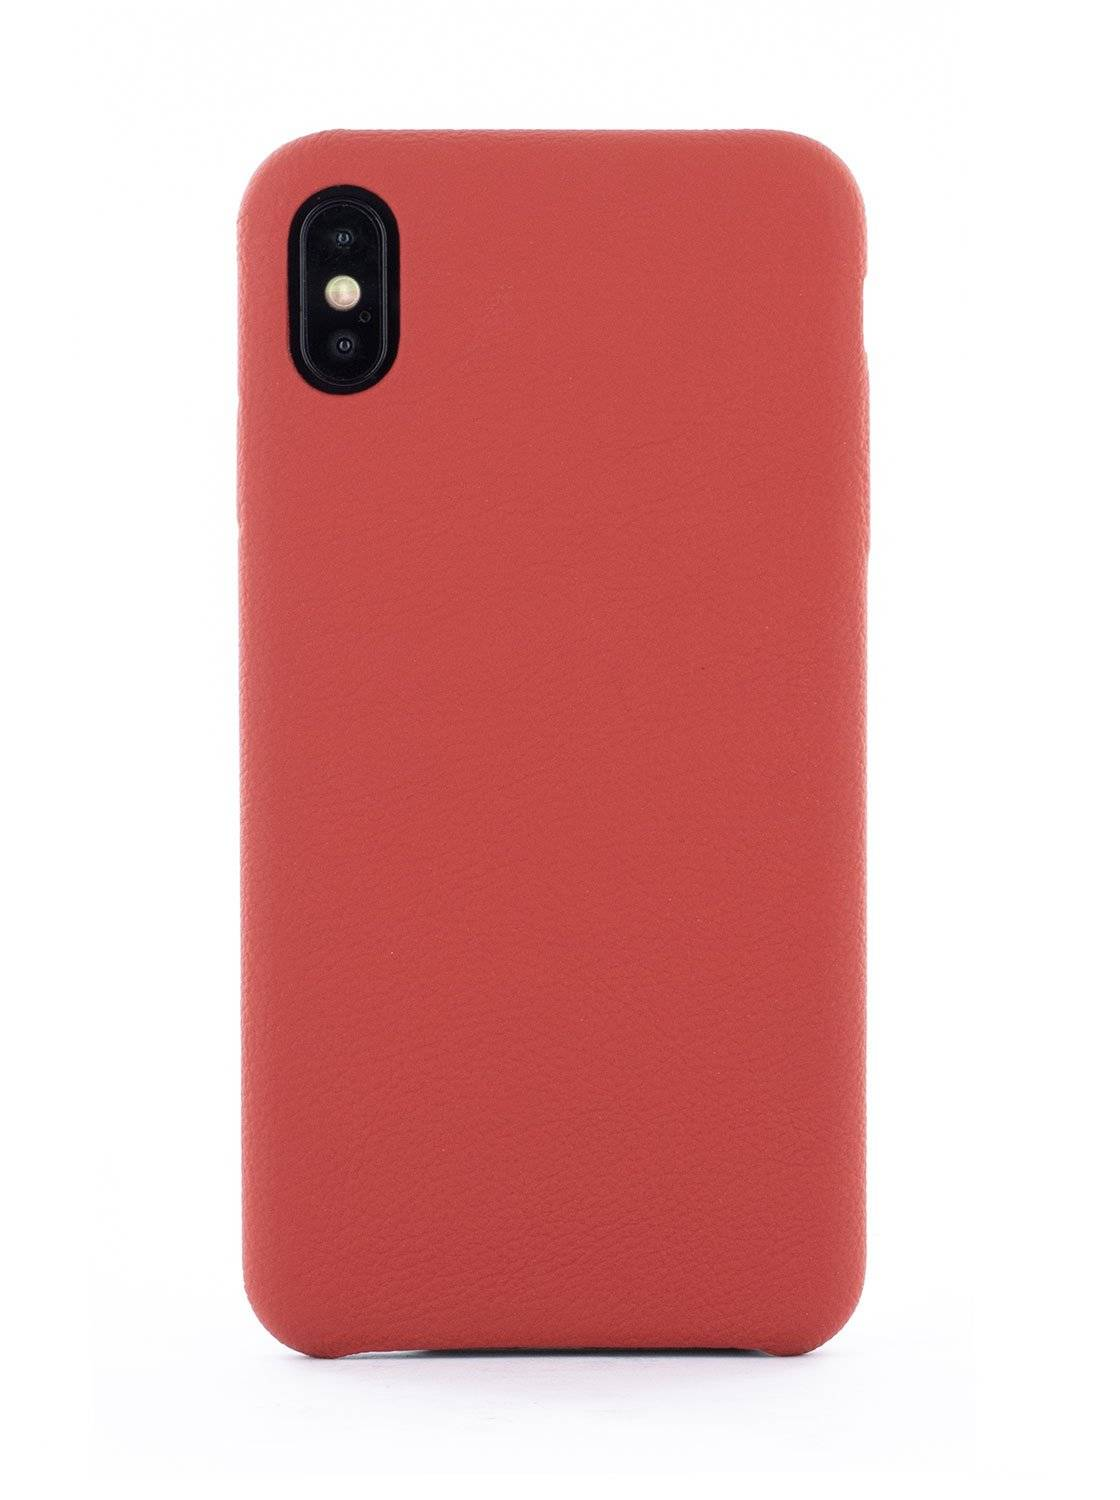 Greenwich AEON Luxury Leather Wrapped Back Shell for iPhone XS Max - Red